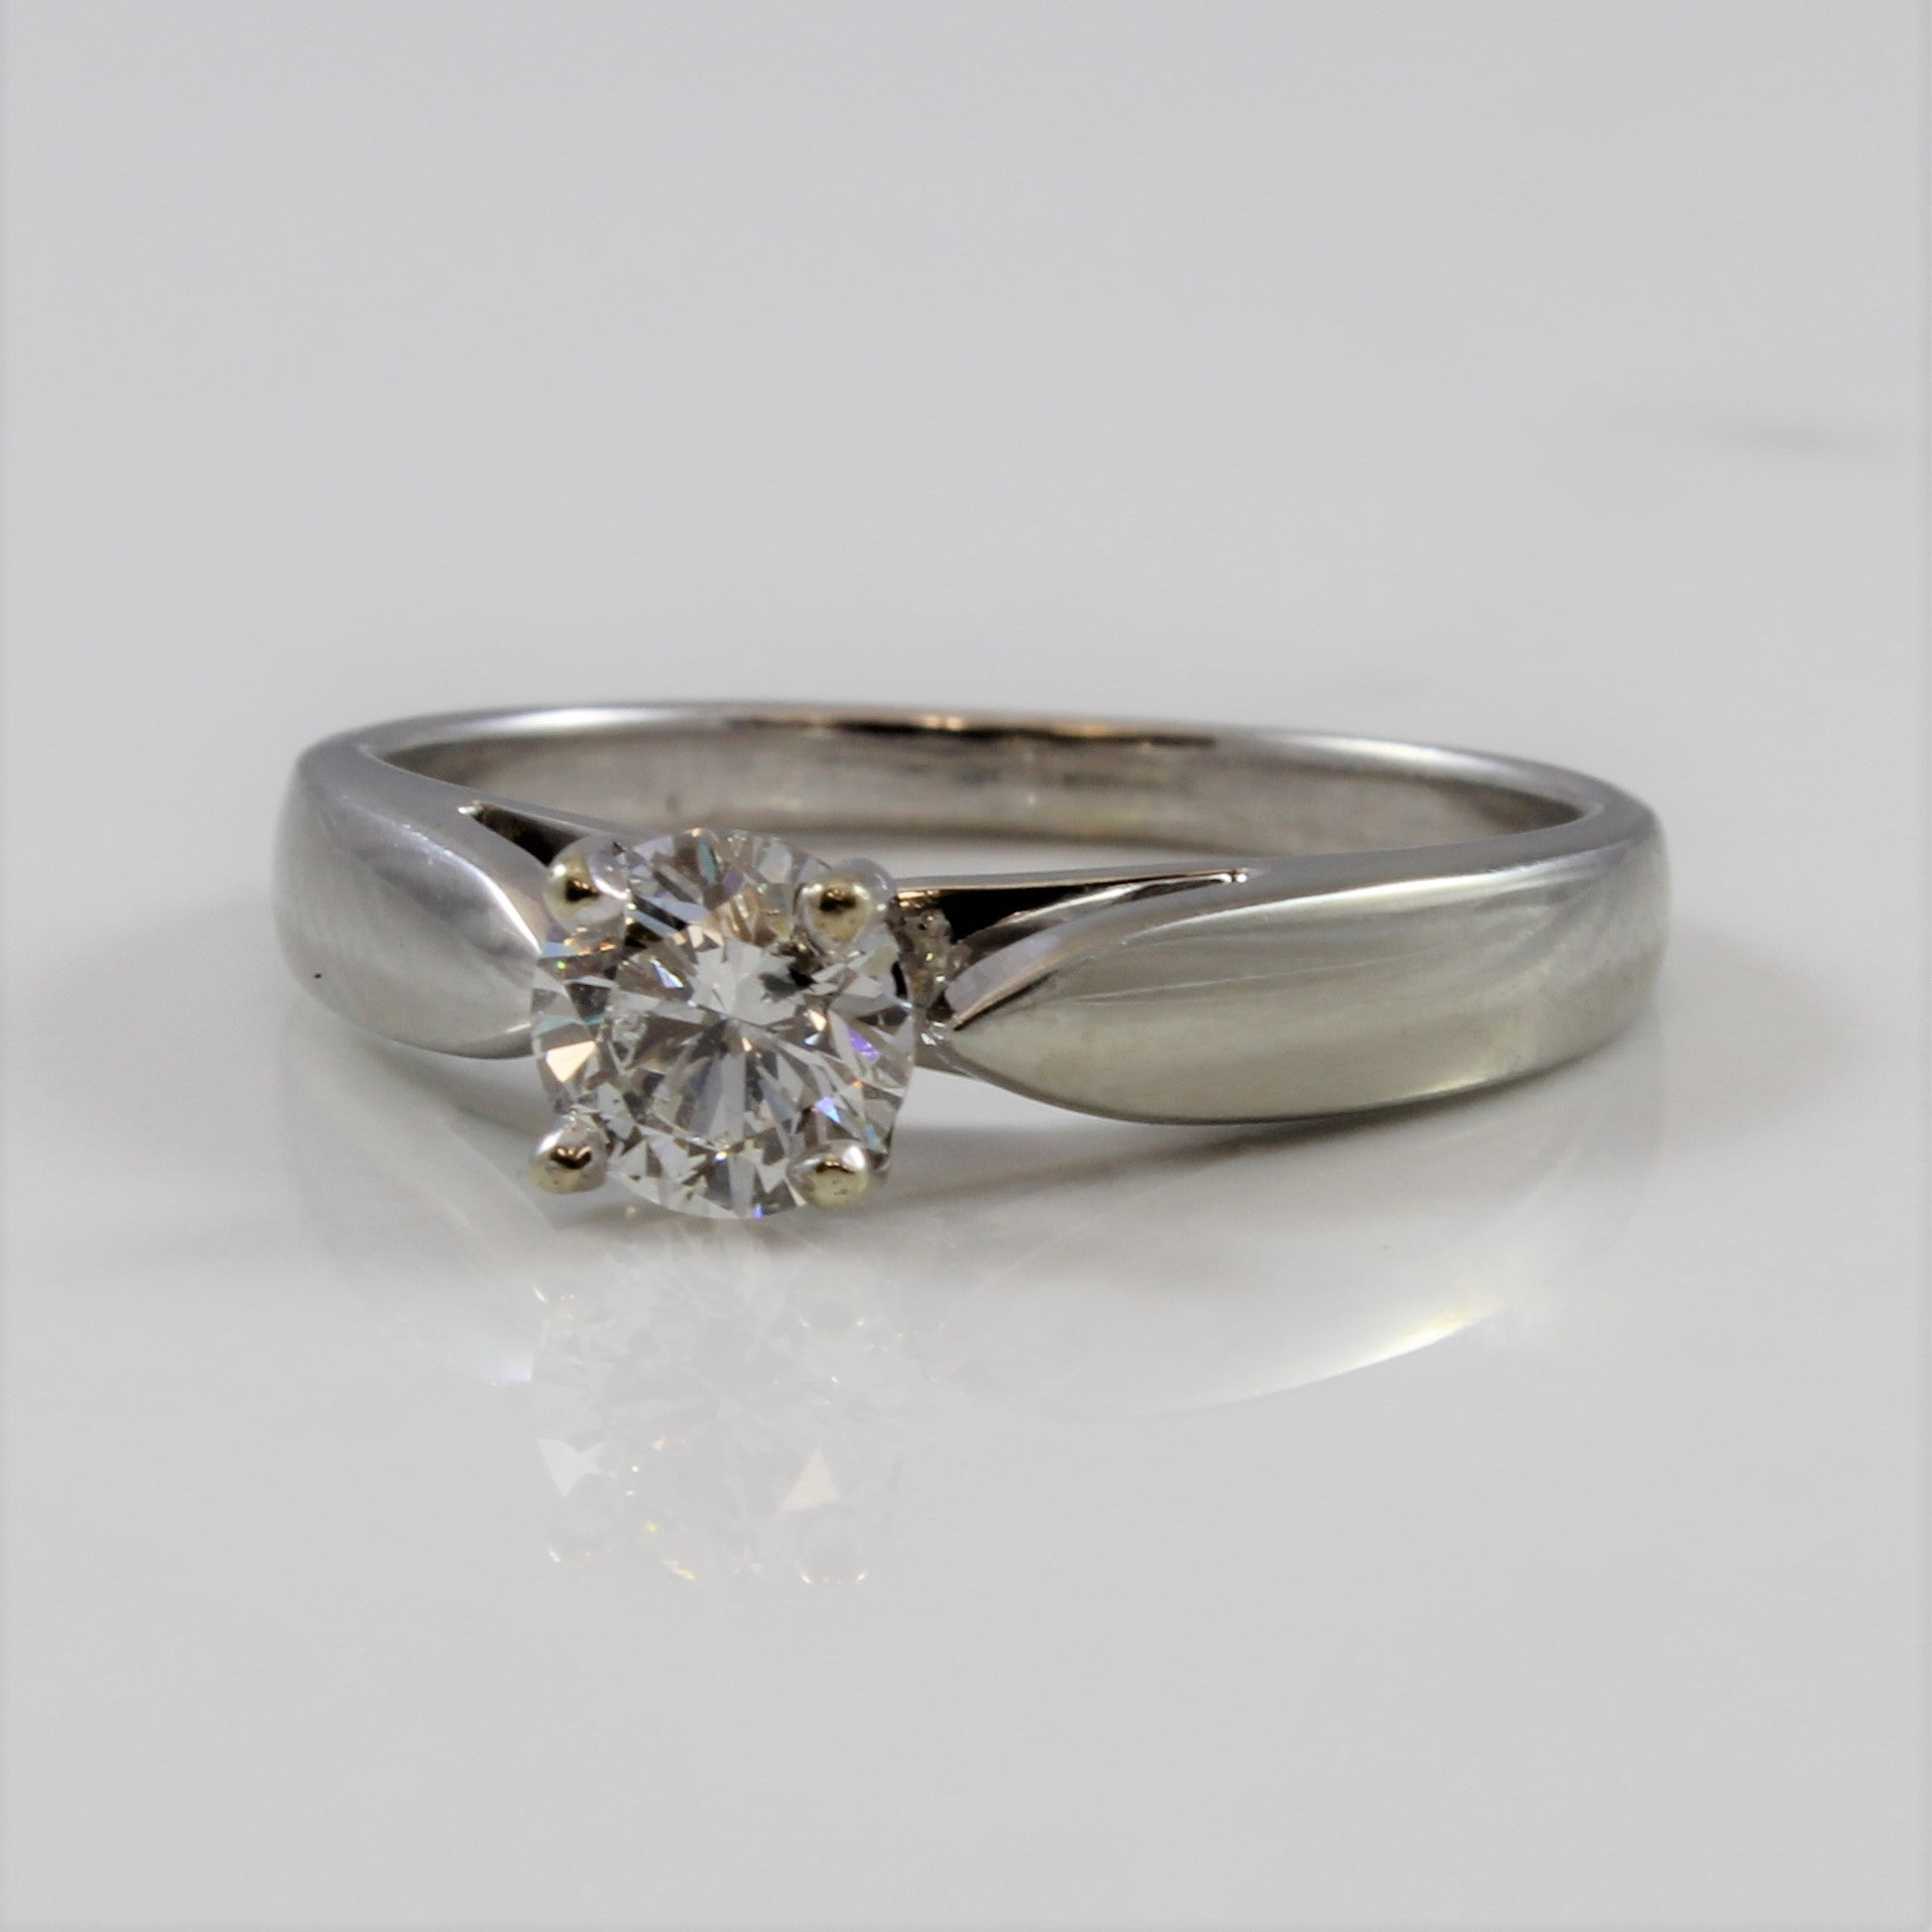 Tapered Solitaire Diamond Engagement Ring | 0.50 ct | SZ 6.25 |